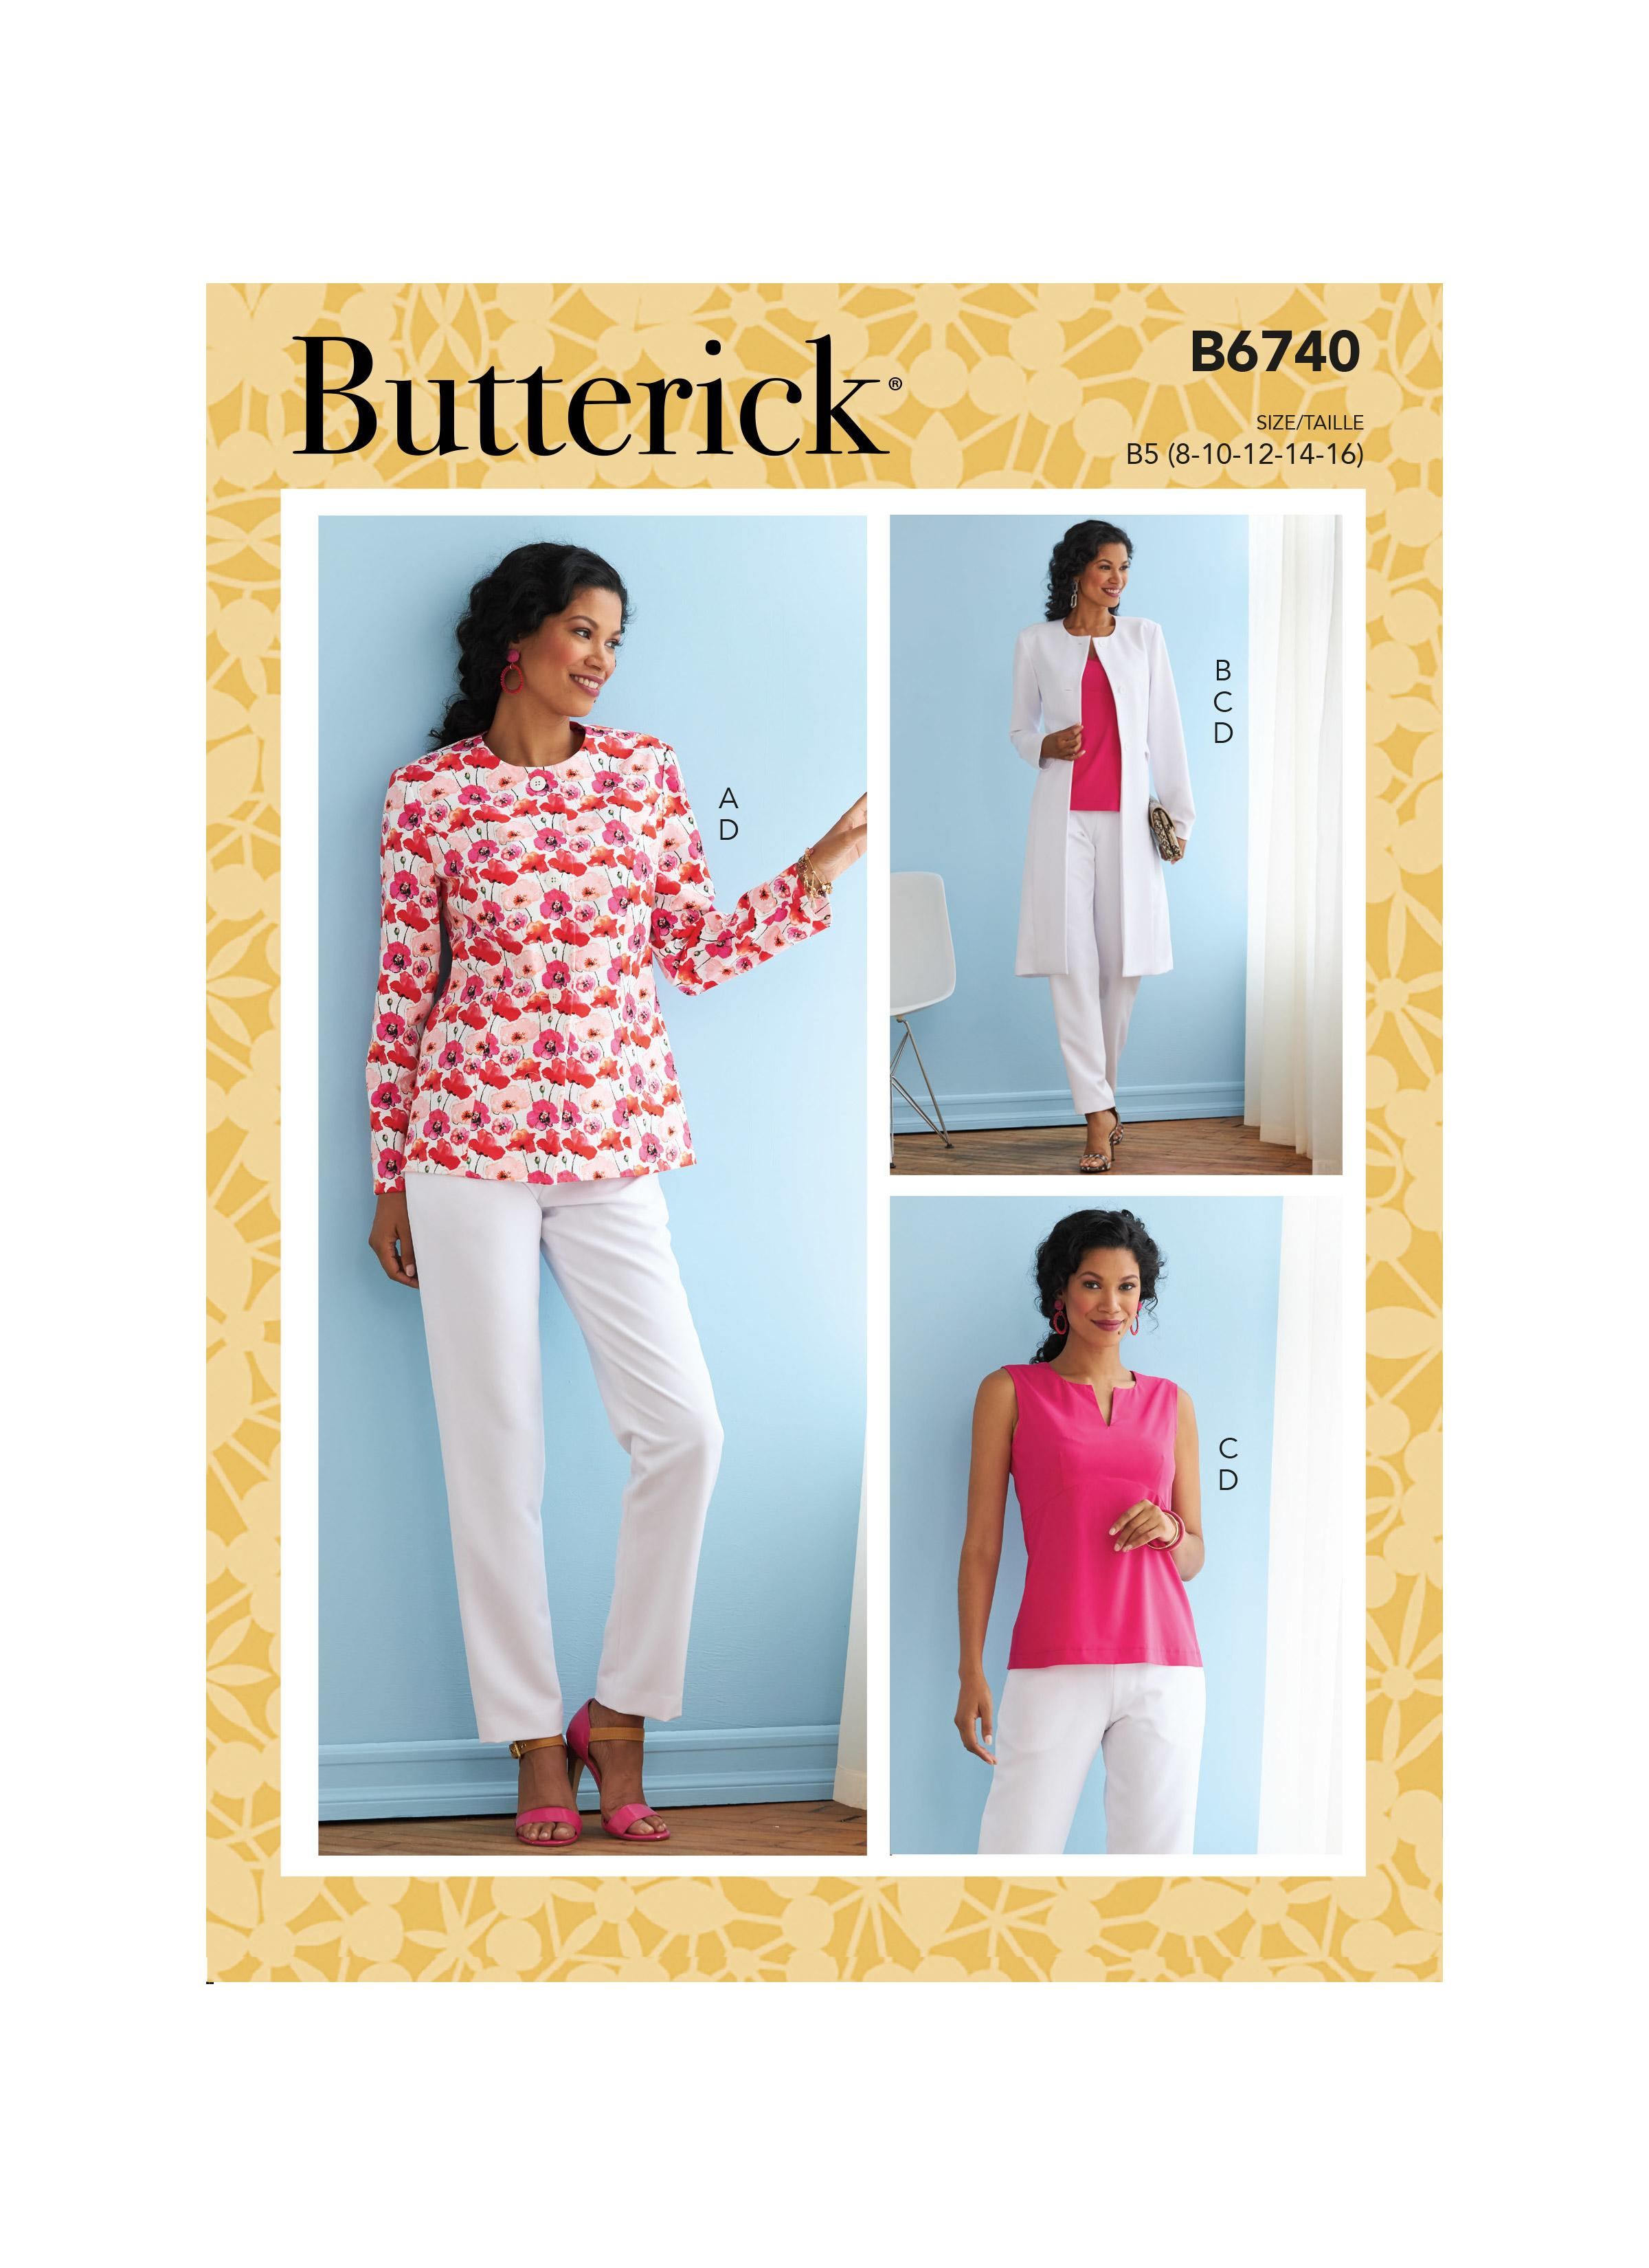 Butterick B6740 Misses' Jacket, Coat, Top & Pants